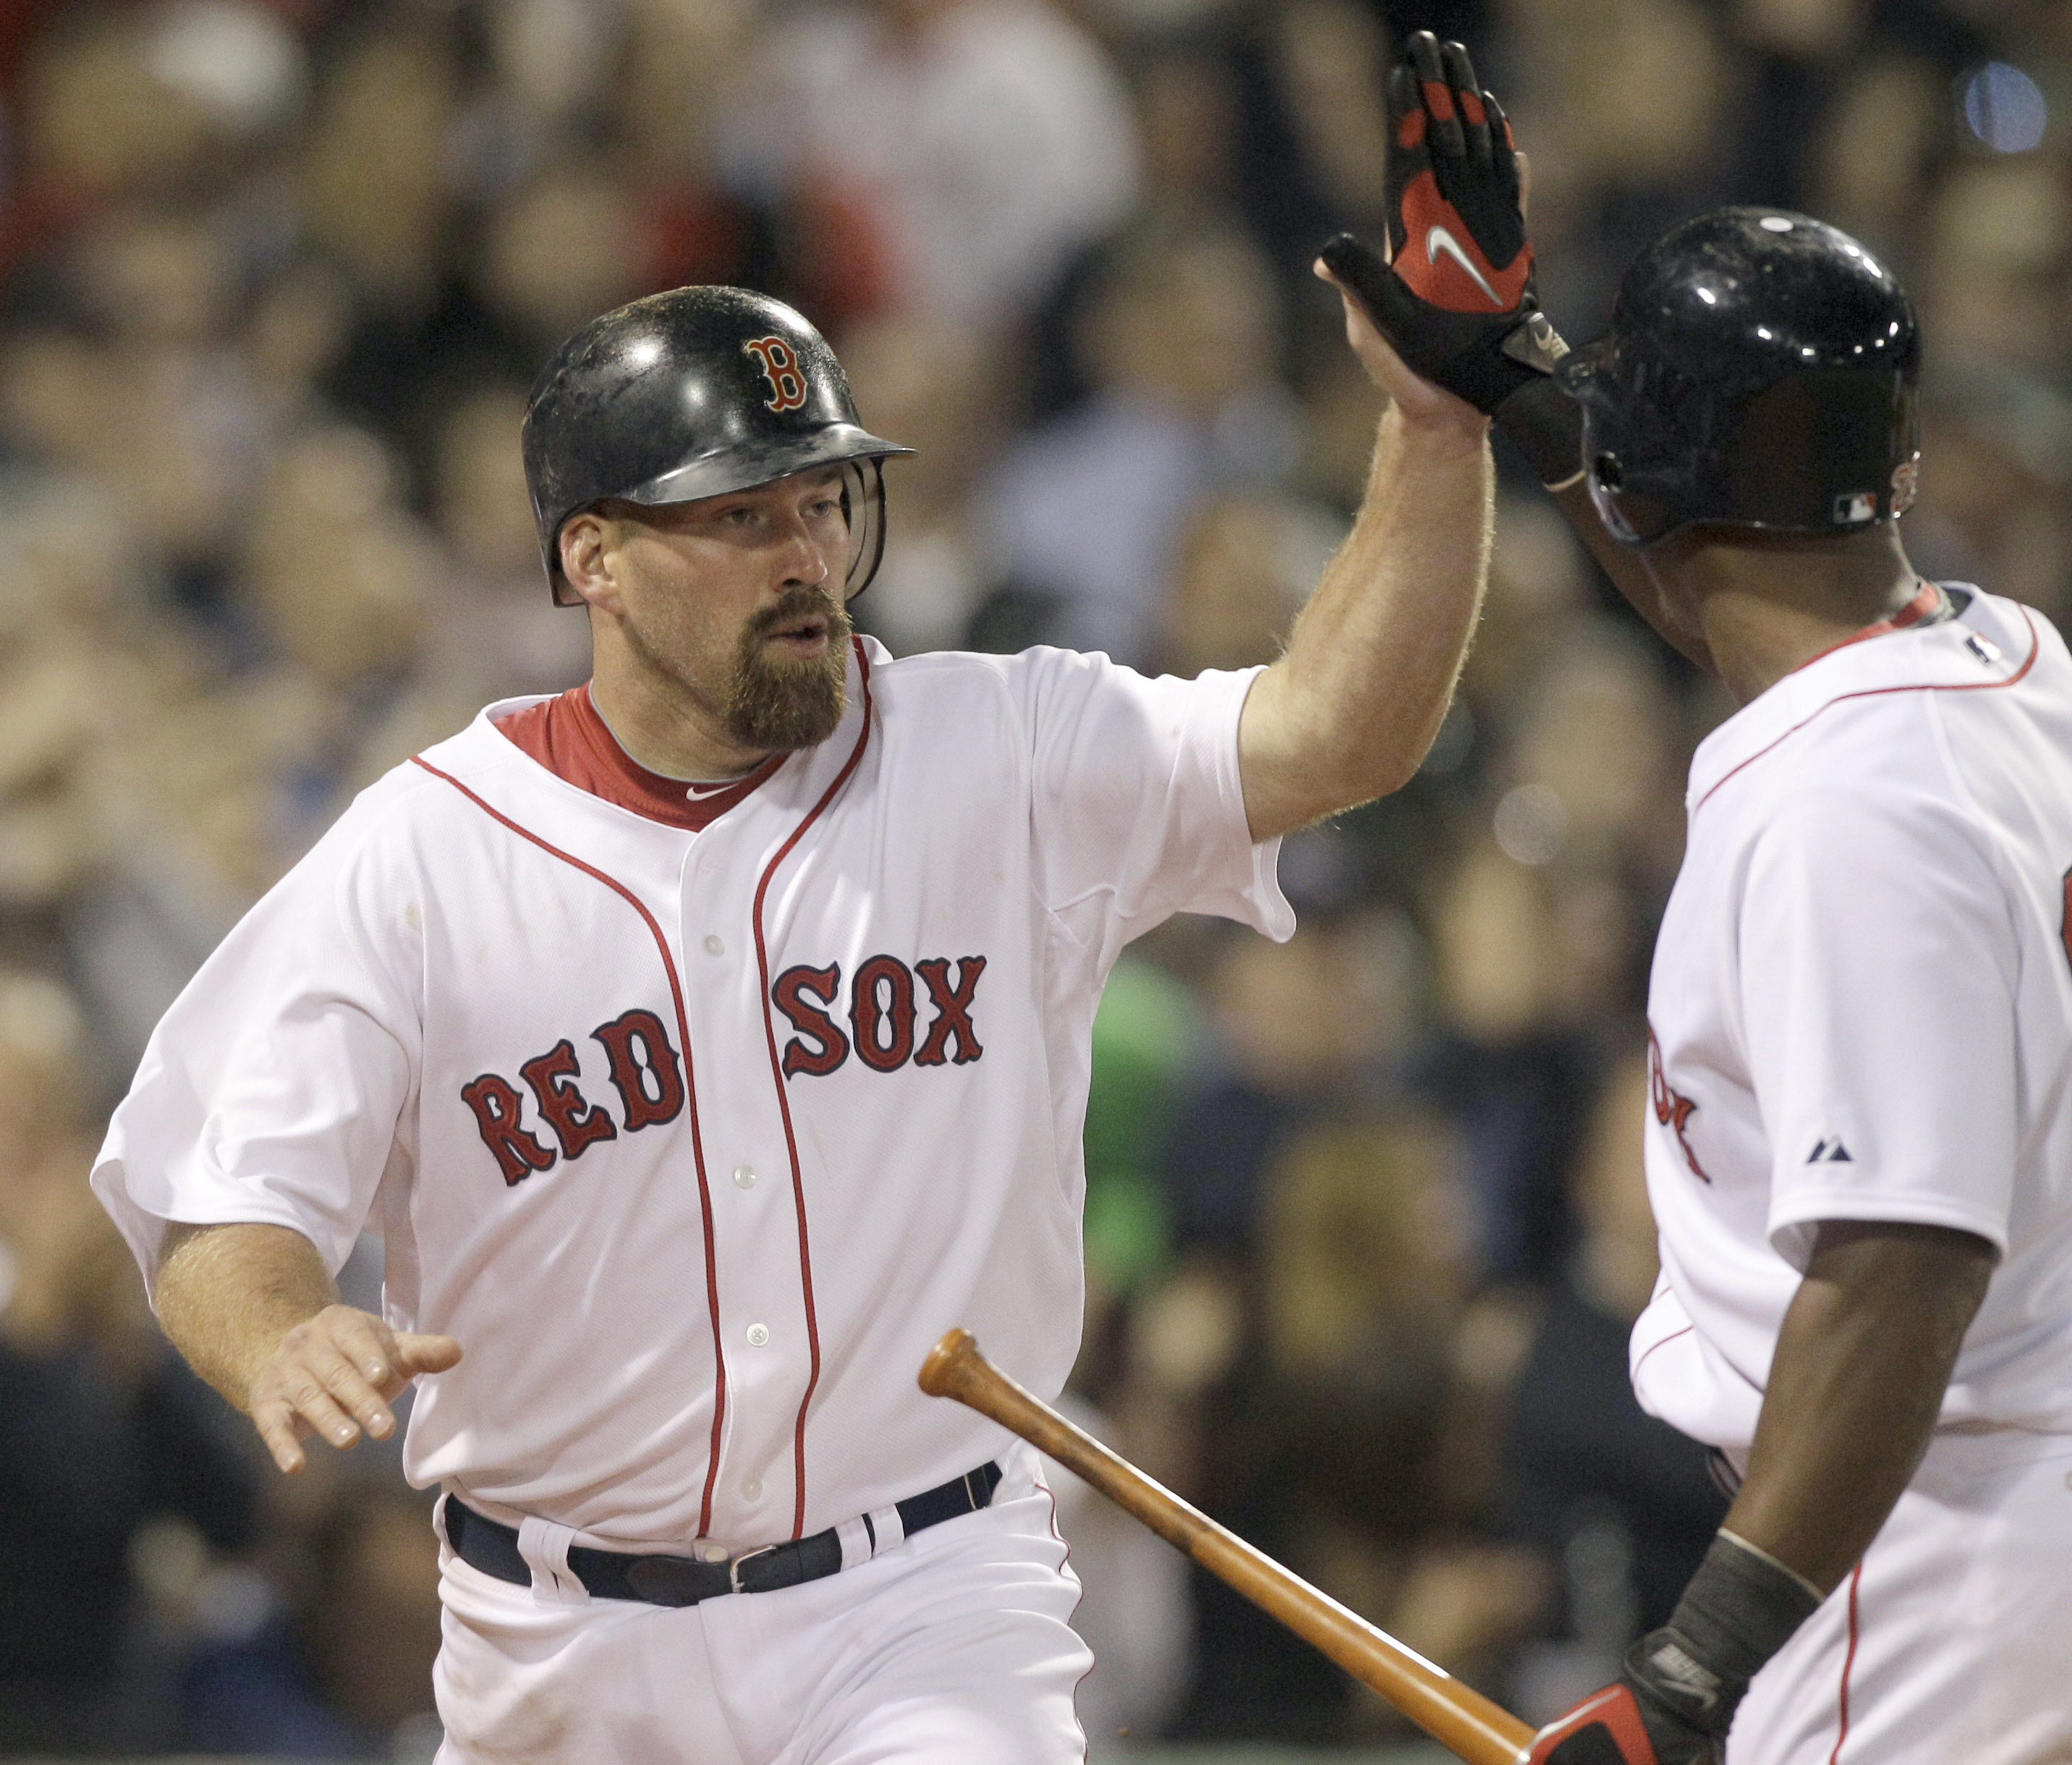 Boston Red Sox's Kevin Youkilis, left, is congratulated by Adrian Beltre after scoring on a passed ball in the seventh inning against the New York Yan...